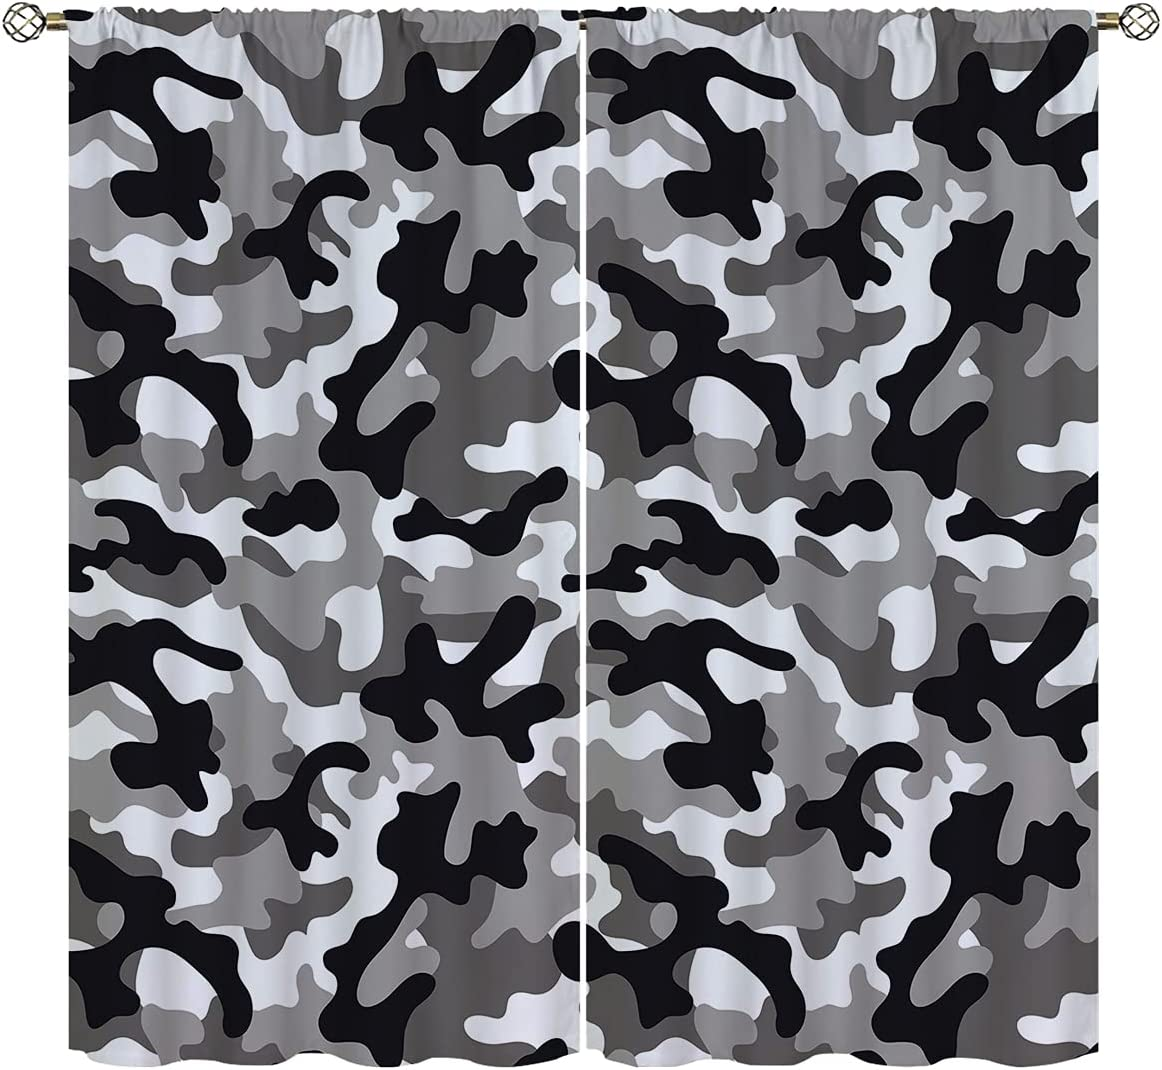 Camouflage Background Blackout Curtains for Home Decor,Colorful Camo Blue Brown Rod Pocket Thermal Insulated Drapes Darkening Window Curtain for Girls Boy Bedroom Living Room 42 x 63 Inch